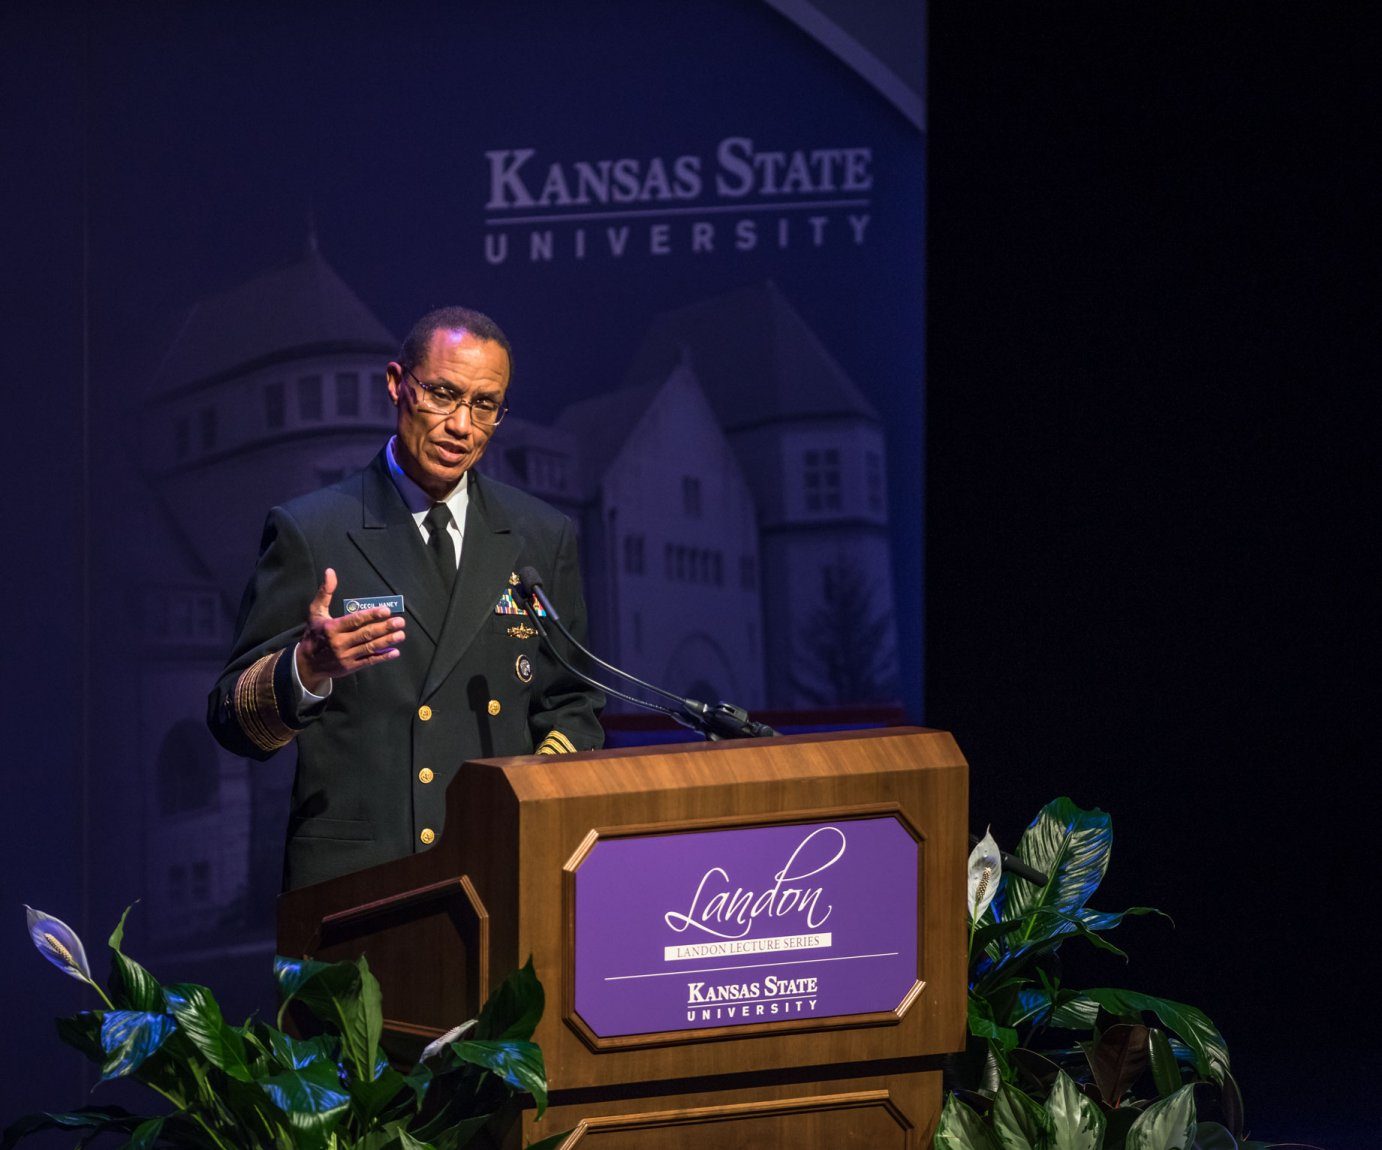 Photo courtesy of Kansas State University Communications and Marketing